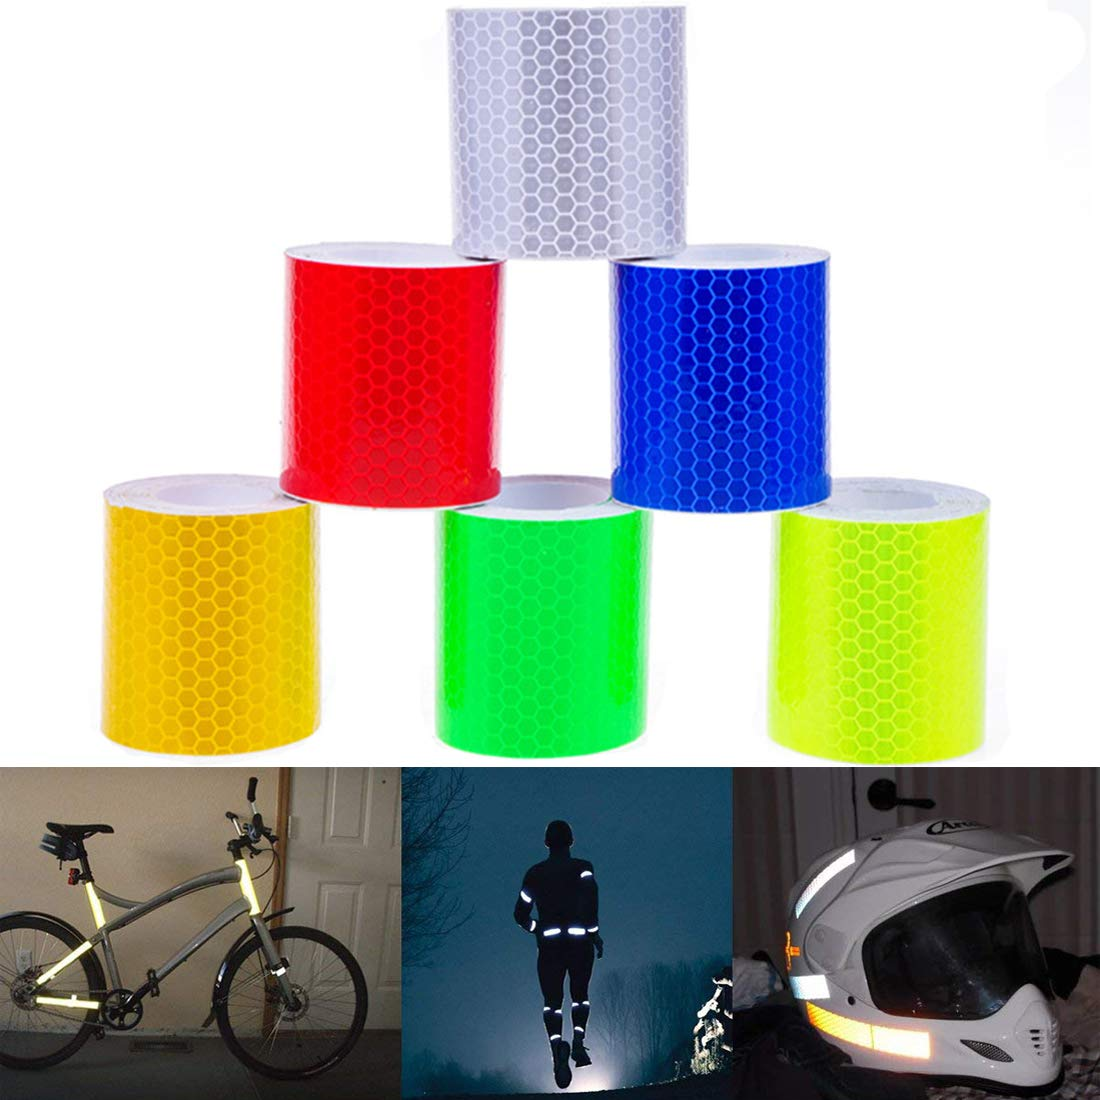 Set of 6-Multicolored BetMoony Reflective Tape Safety Warning Stickers Reflector Conspicuity Tape Stickers High Visibility Waterproof Cars Trucks DIY Decoration 2X10 Motorcycles